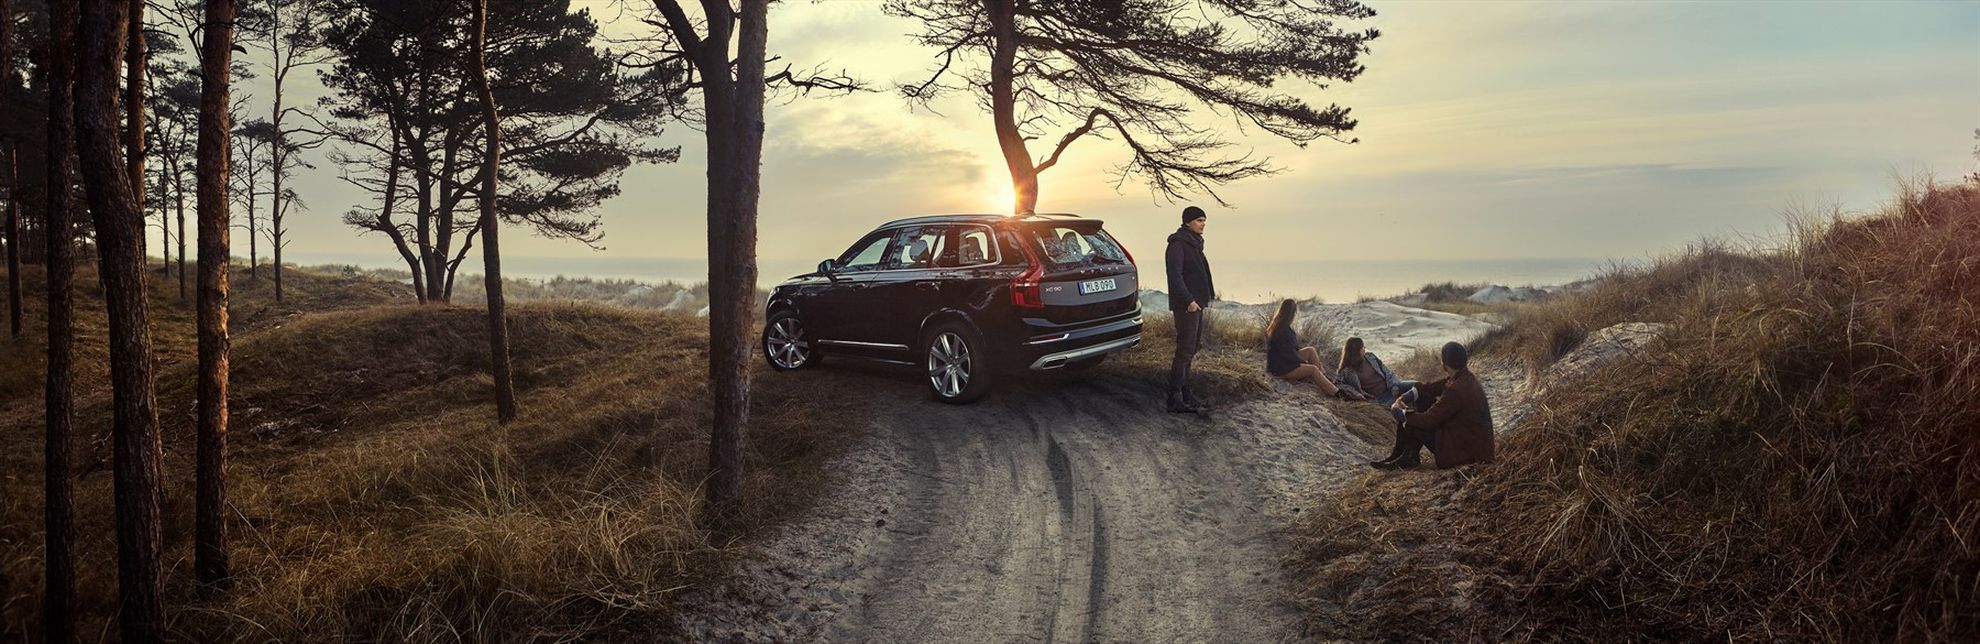 Volvo-Cars-New-Beginning-brand-campaign-featuring-Avicii-goes-live-1